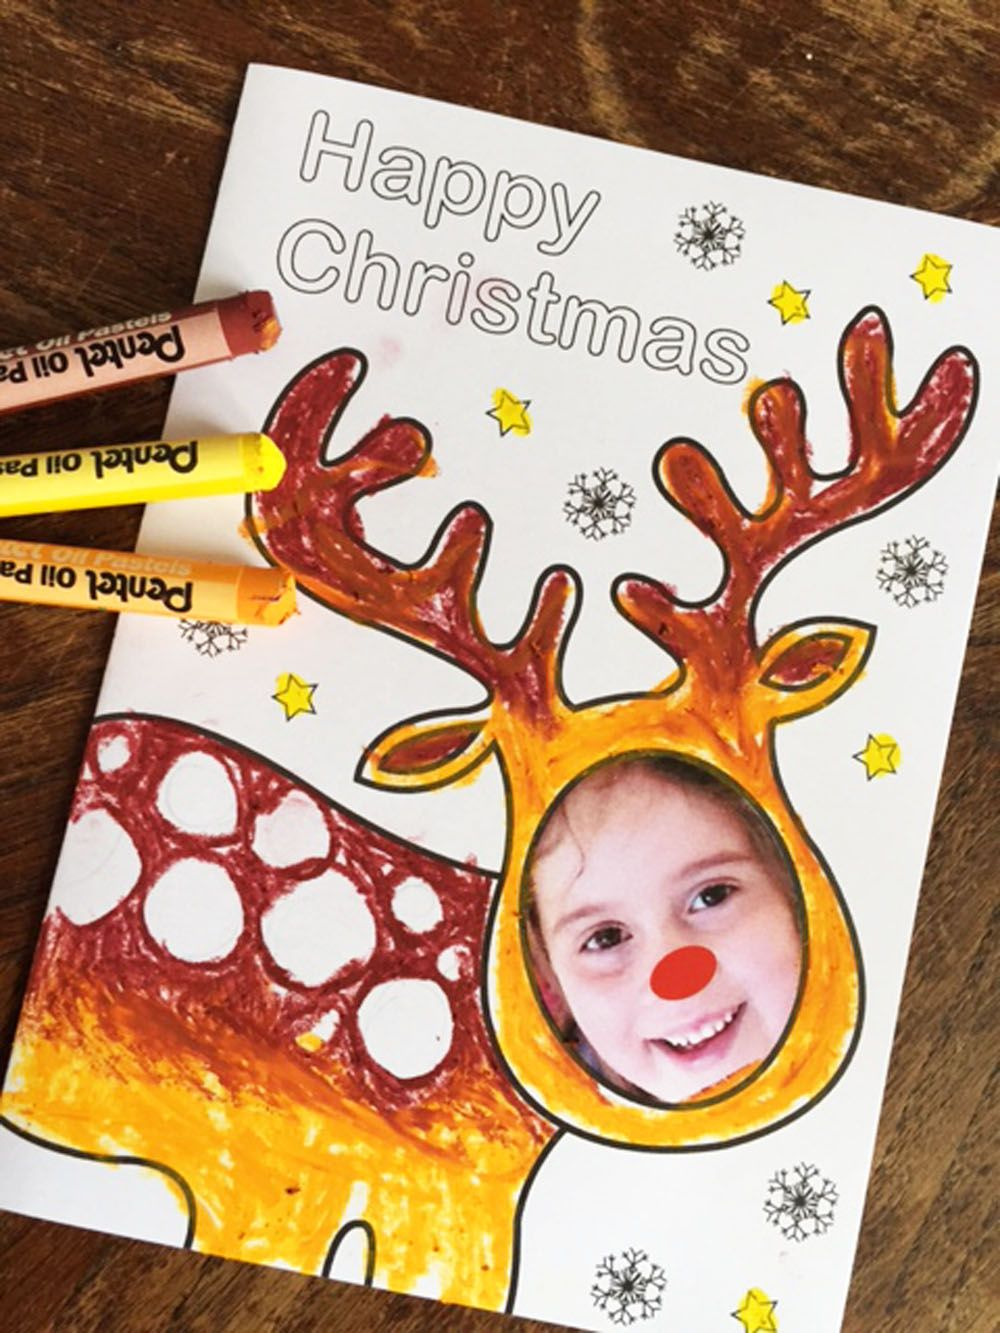 Have Fun Making Personalised Christmas Cards With This Reindeer Photo Face Downloadable Template Christmas Art Projects Diy Christmas Cards Reindeer Card